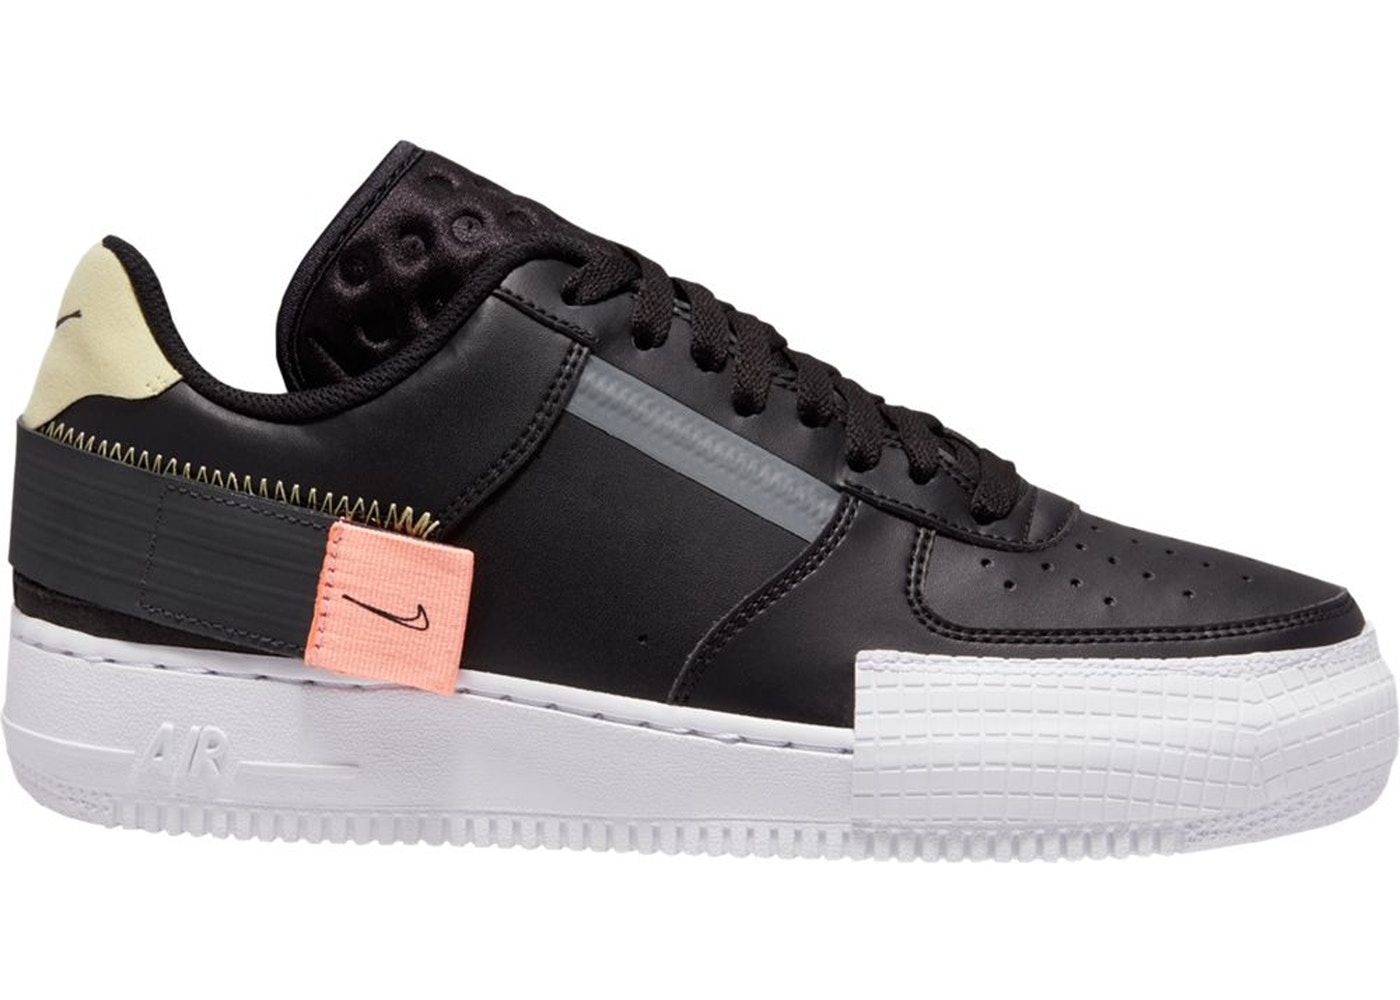 Nike Air Force 1 Low Type All Black